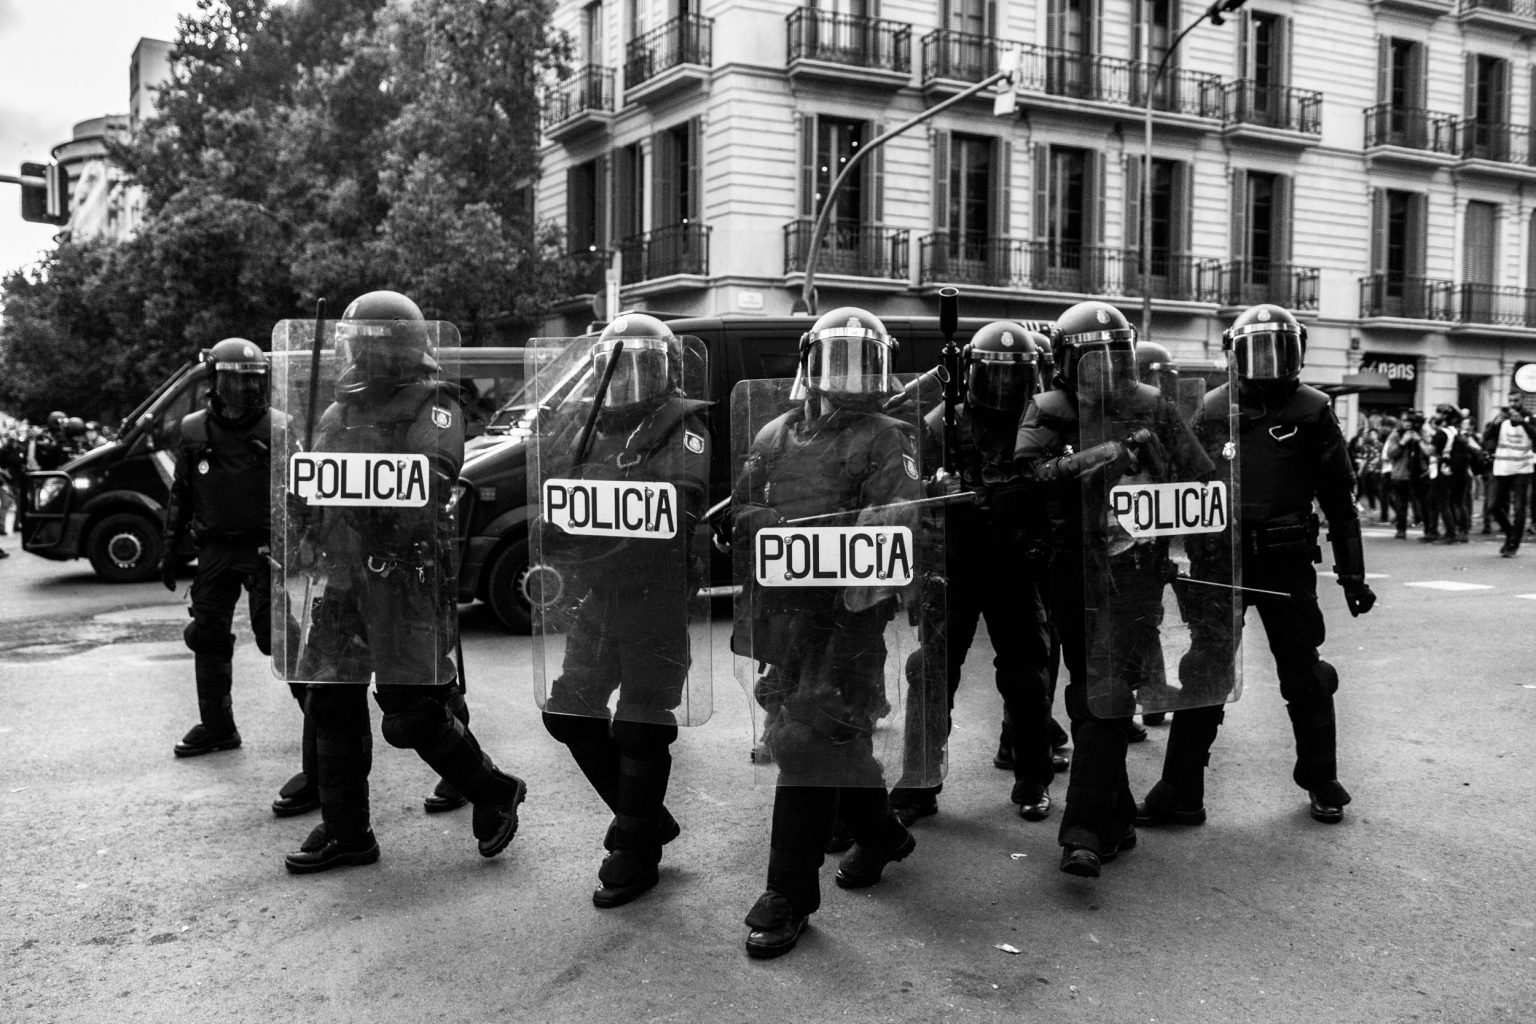 Police officers walk through the crowd in Urquinaona Square at the start of the demonstration and remove the demonstrators with their batons and shields on Saturday, October 19 in Barcelona.